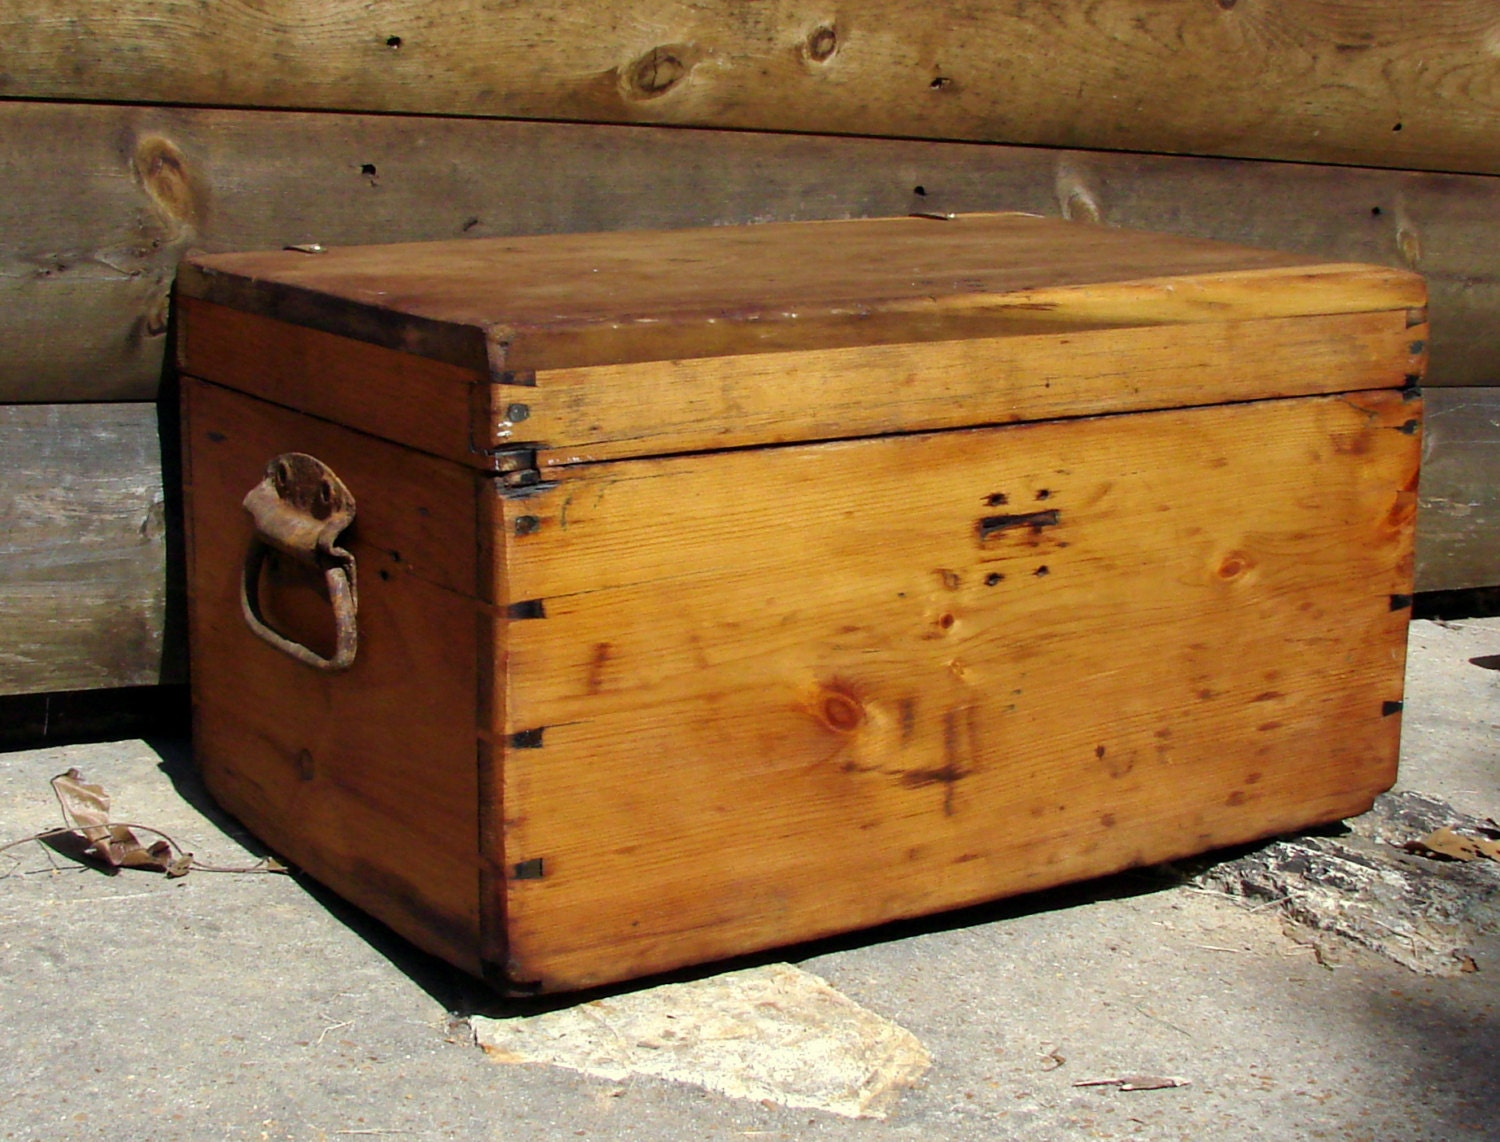 Wooden Chest Hardware ~ Old wooden chest heavy duty iron handles antique hinges well